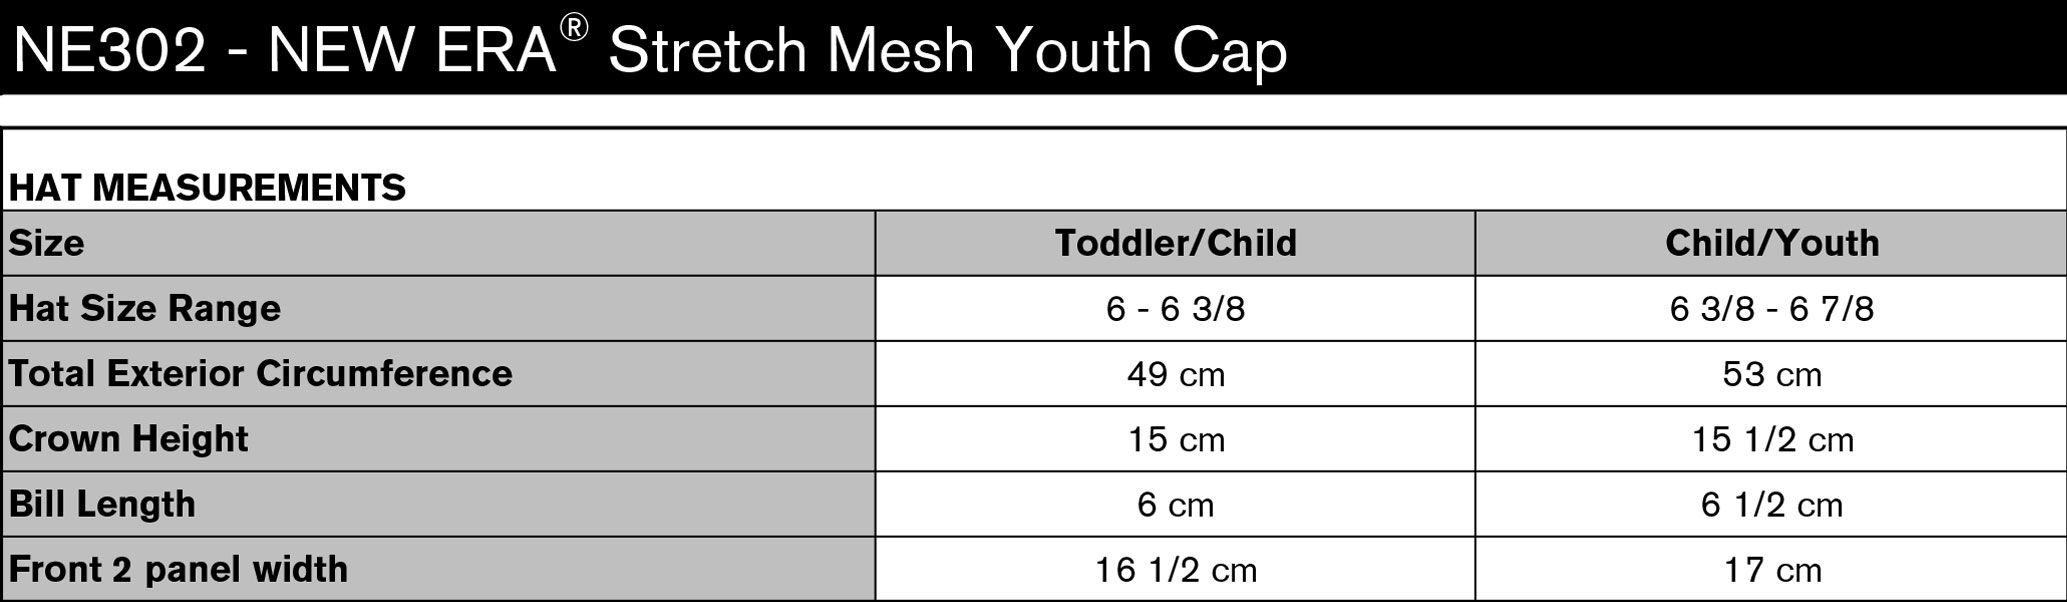 New Era Stretch Mesh Child Cap Specs Sheet